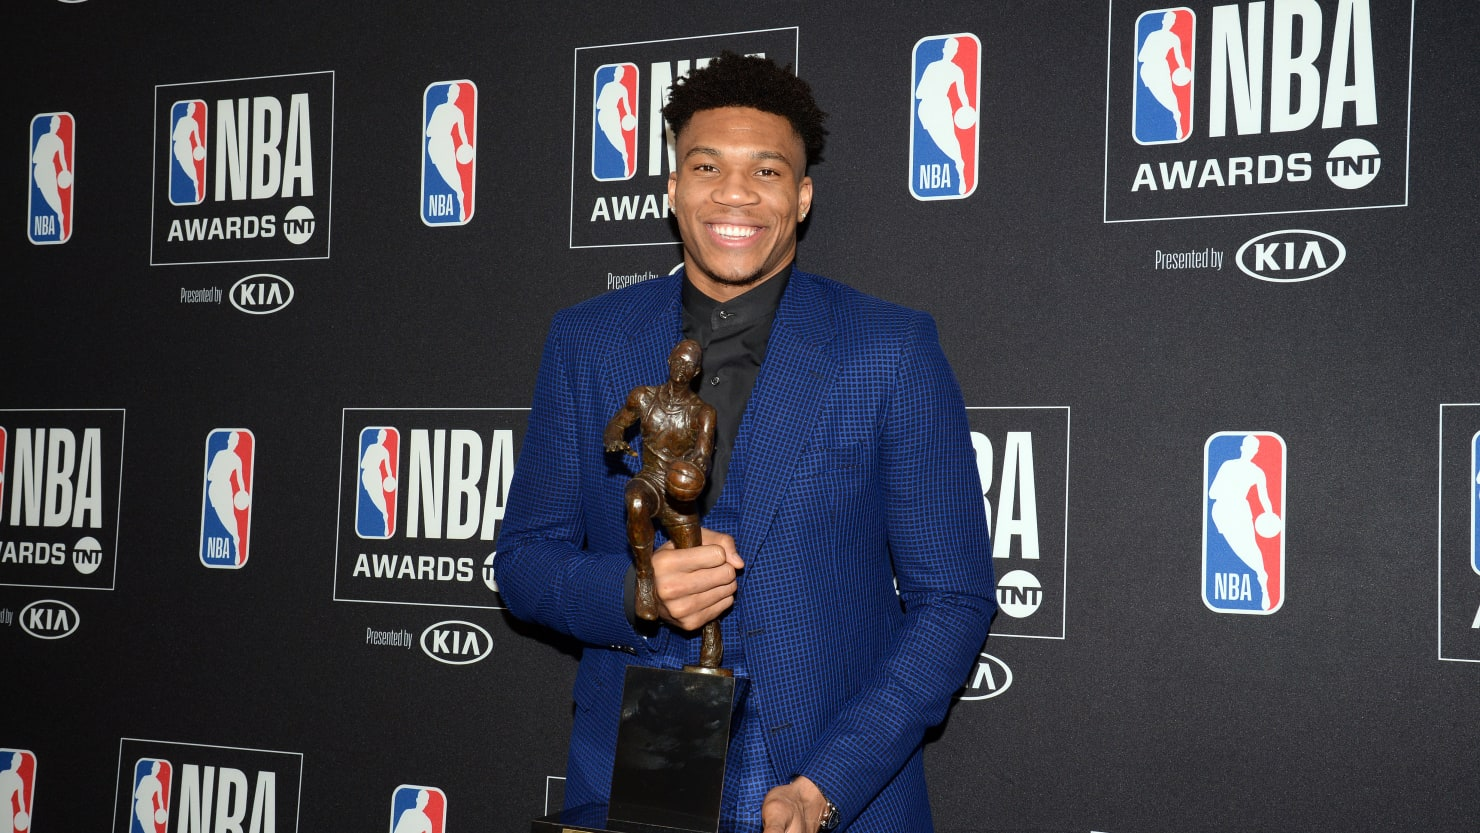 Giannis Antetokounmpo Named NBA's Most Valuable Player